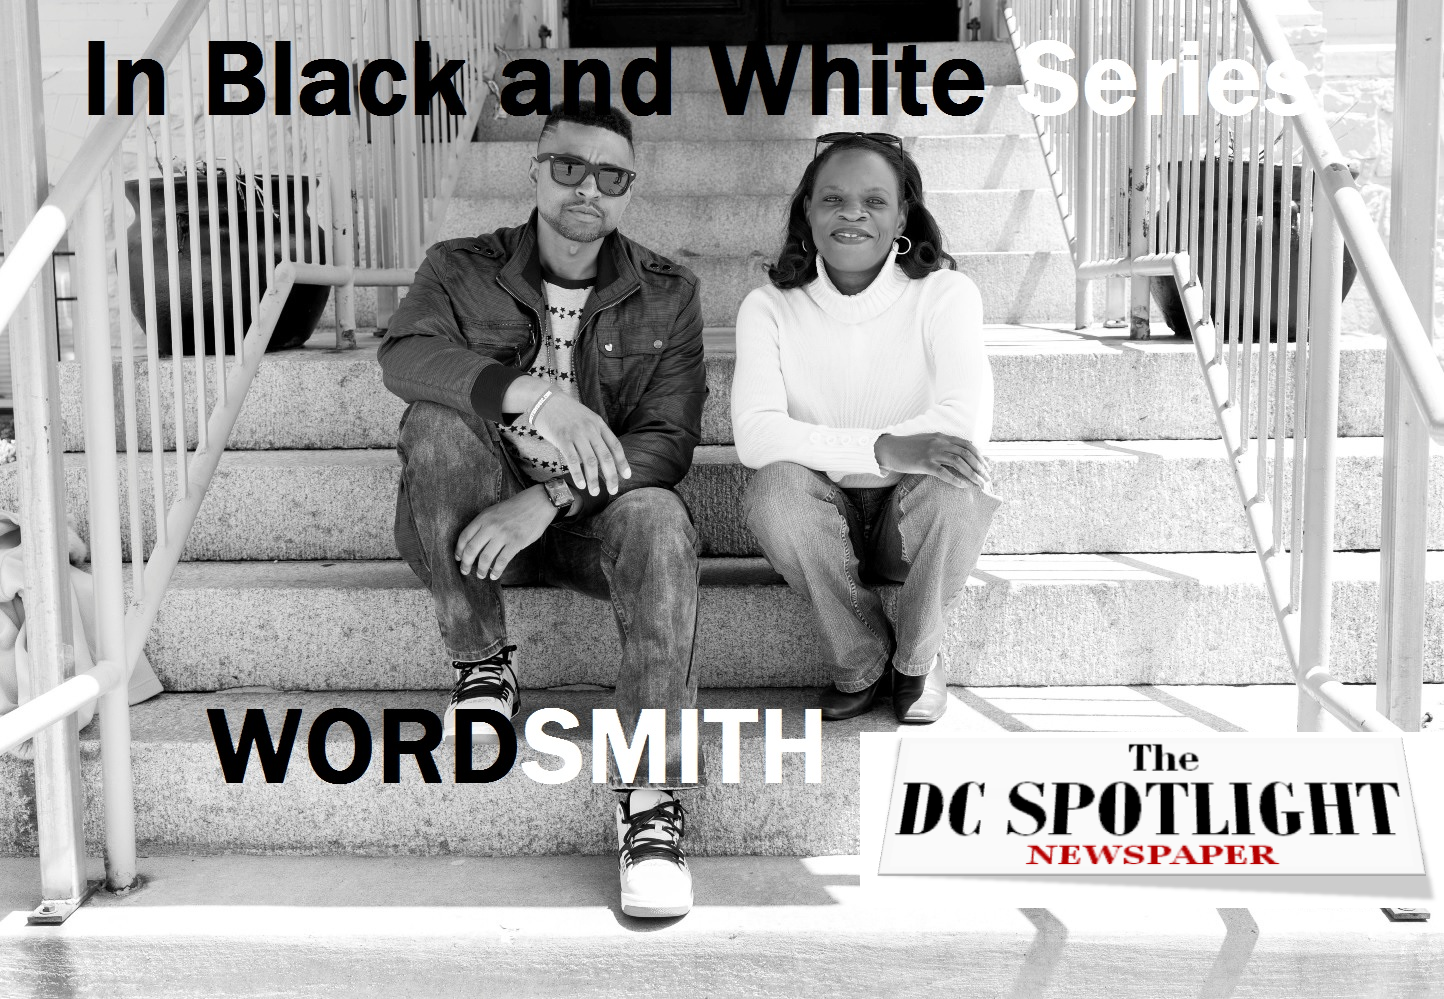 WORDSMITH - WENDY AND WORDSMITH ON STEPS medium LABEL LOGO